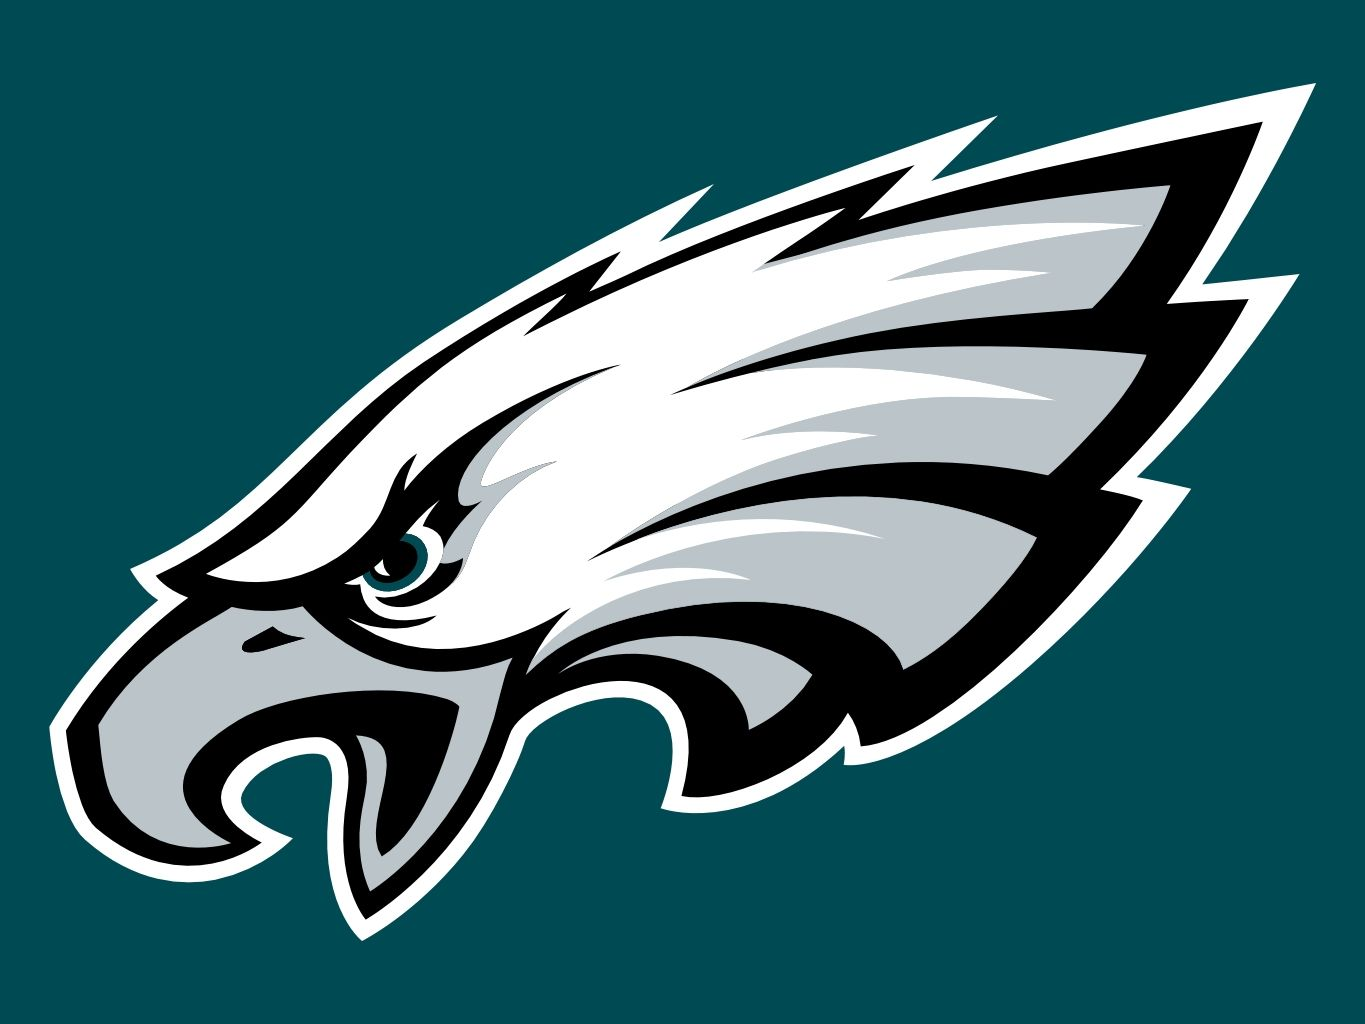 Pin on Eagles.